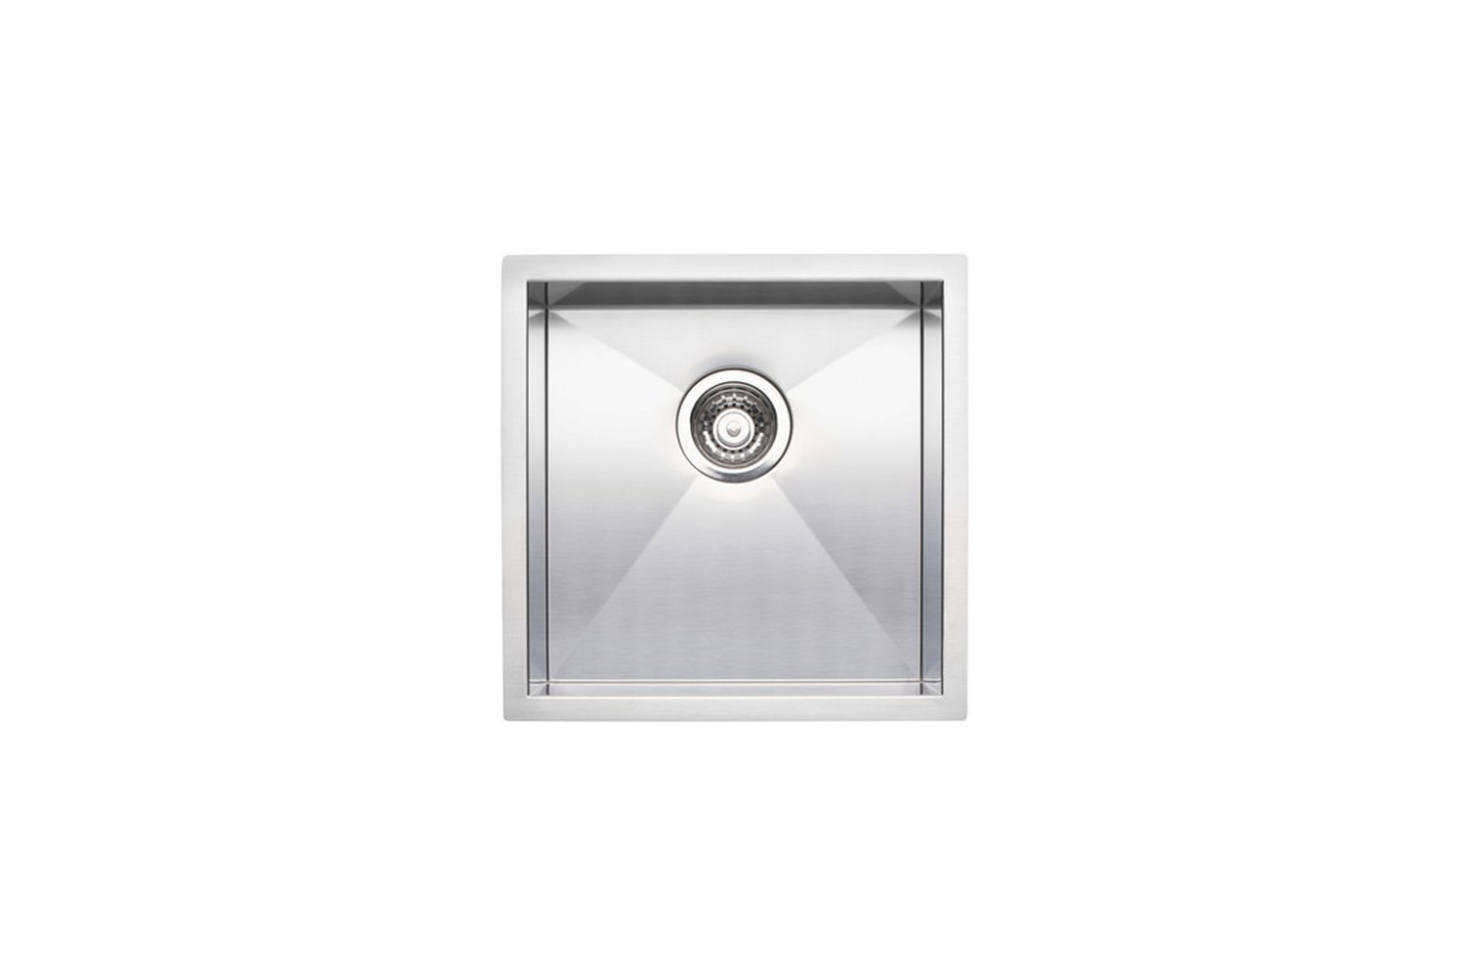 The Blanco Undermount Single Bowl Stainless Steel Bar Sink (5545) is $403 at AJ Madison.